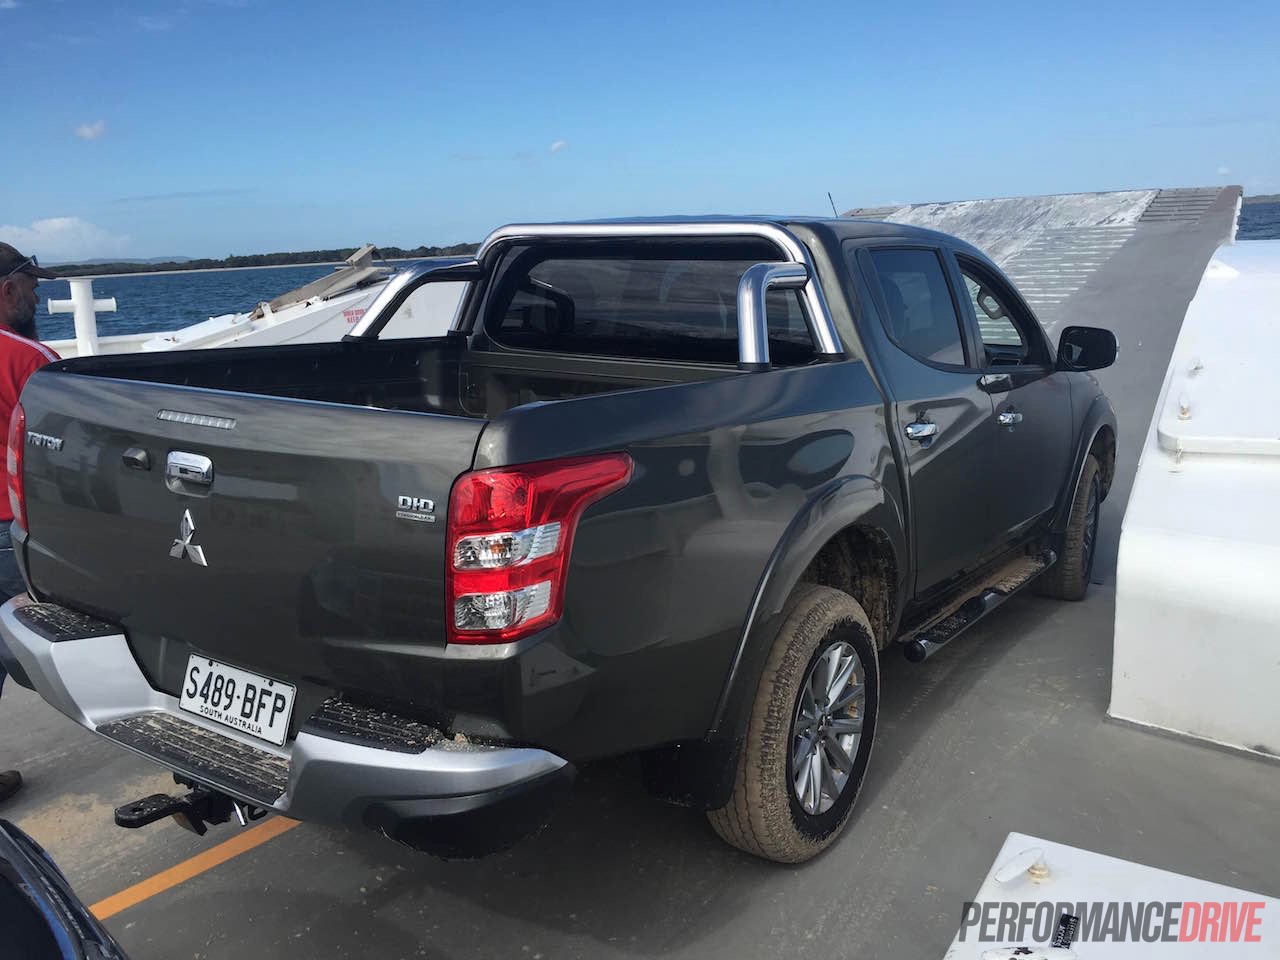 2016 mitsubishi triton review australian launch performancedrive. Black Bedroom Furniture Sets. Home Design Ideas